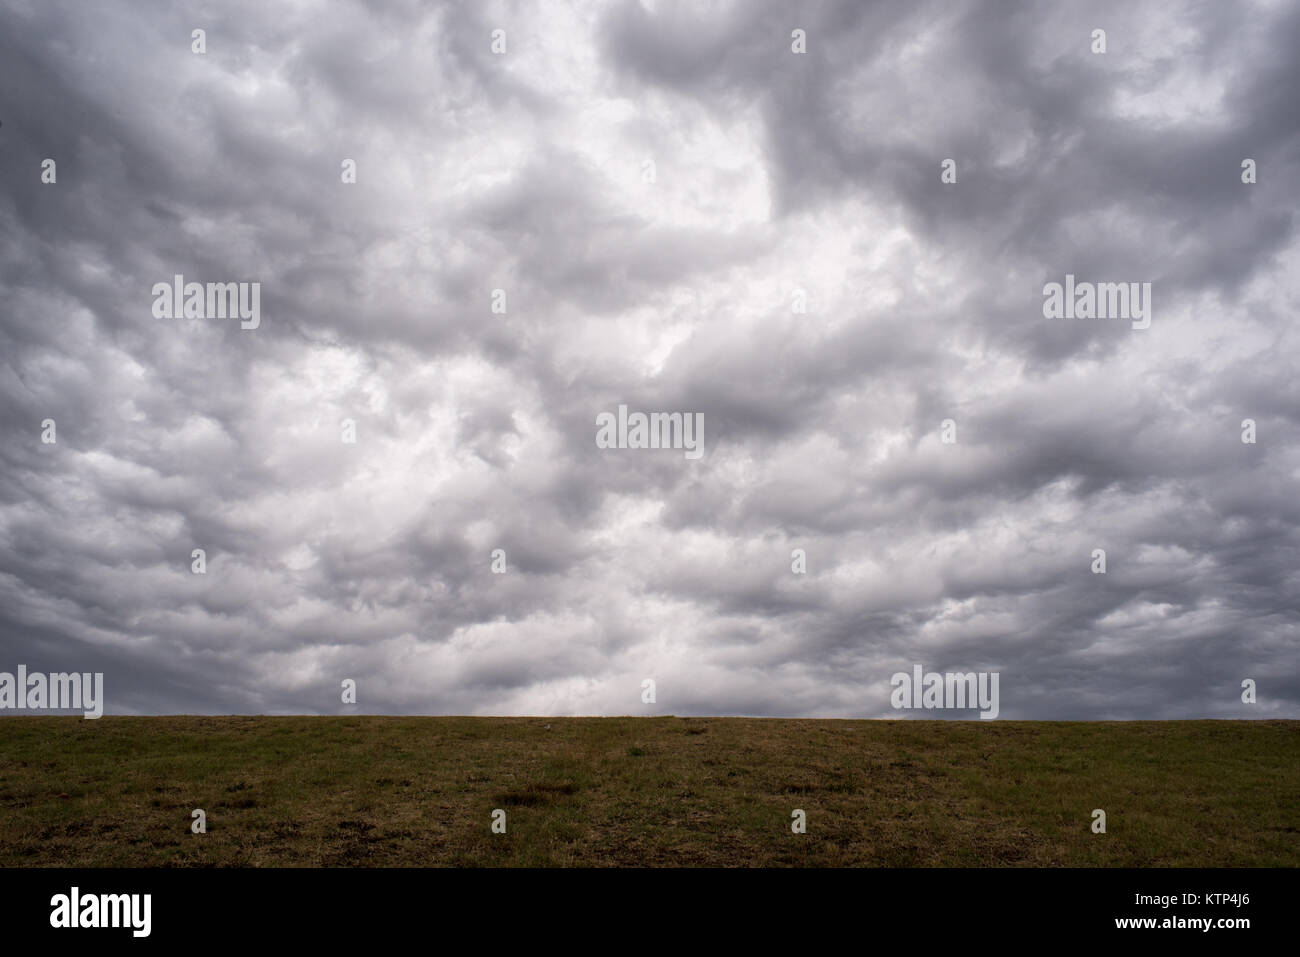 Outdoor view of a cloudy sky behind an embankment - Stock Image